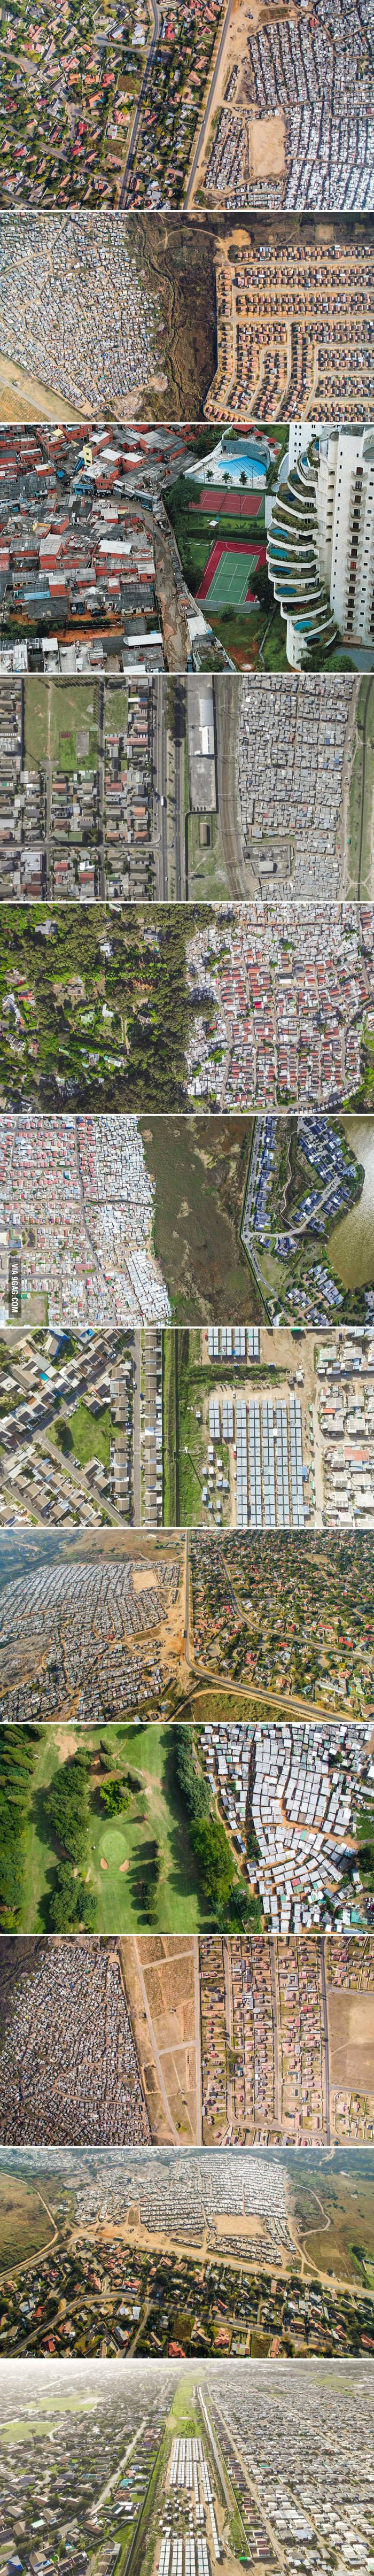 The Lines Dividing The Rich And Poor Captured With Drones